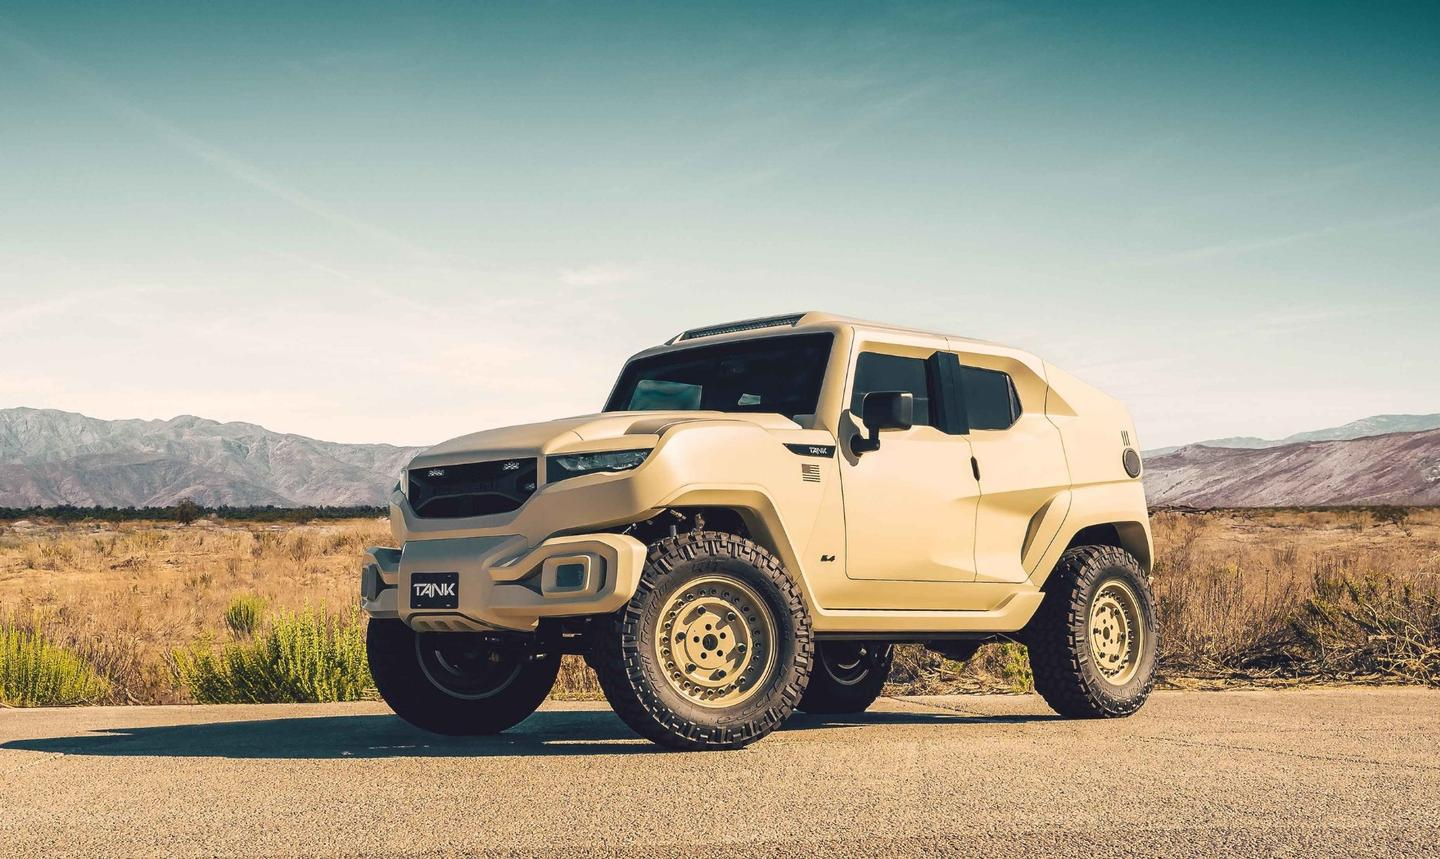 The Rezvani Tank Military Edition is 300 grand's worth of street-legal badass